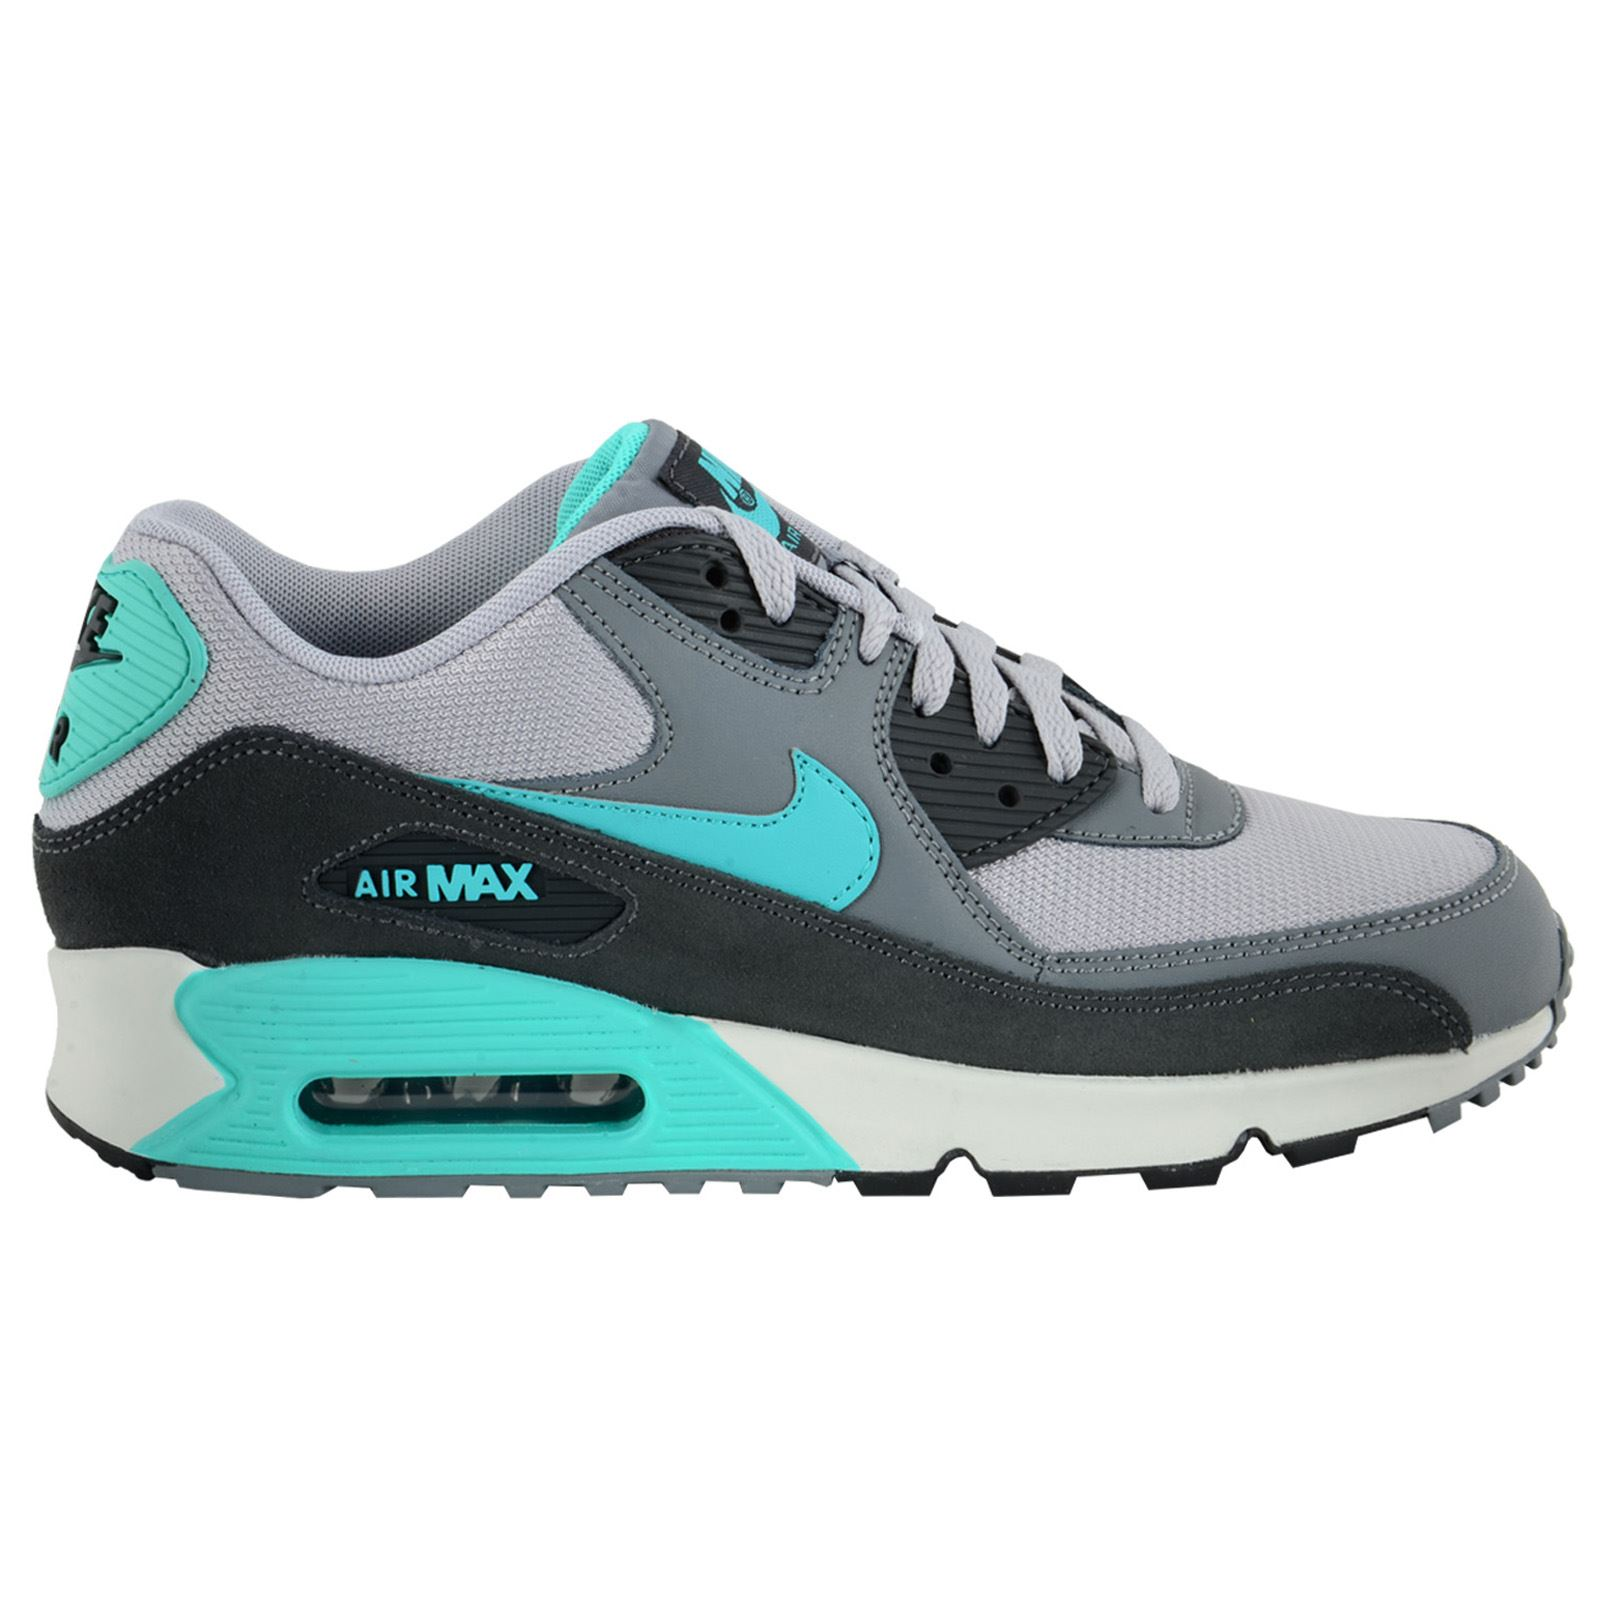 nike air max 90 essential leather mens trainers ebay. Black Bedroom Furniture Sets. Home Design Ideas